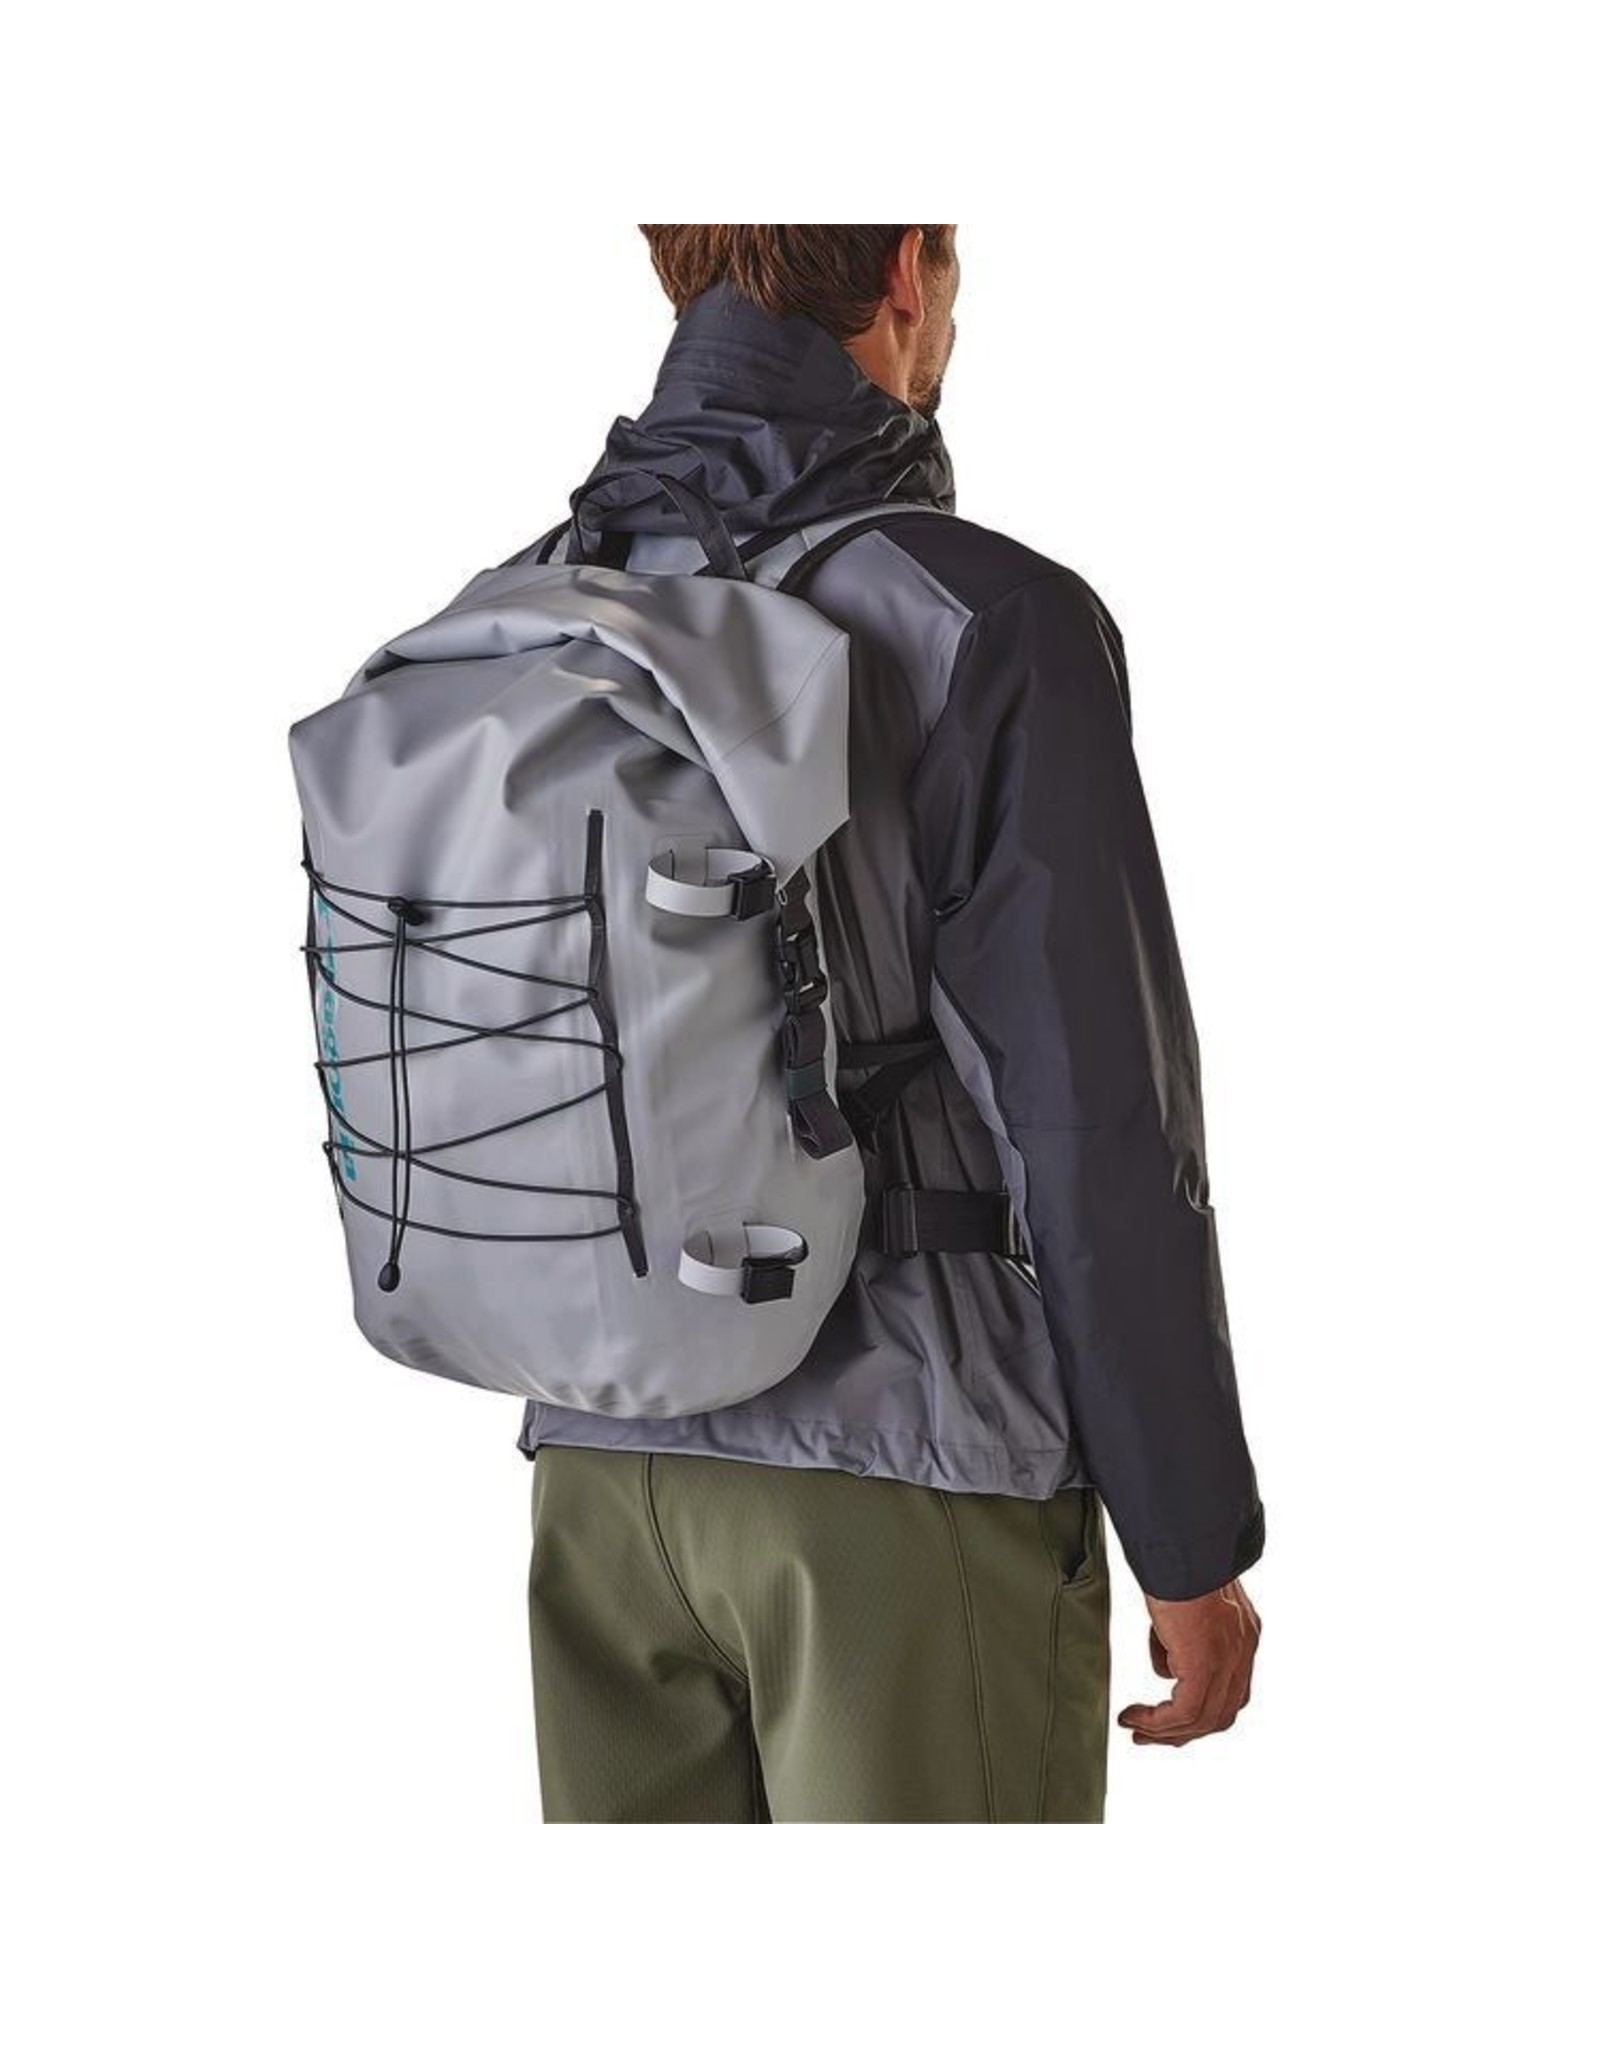 Patagonia Patagonia Stormfront Roll Top Pack One  45L